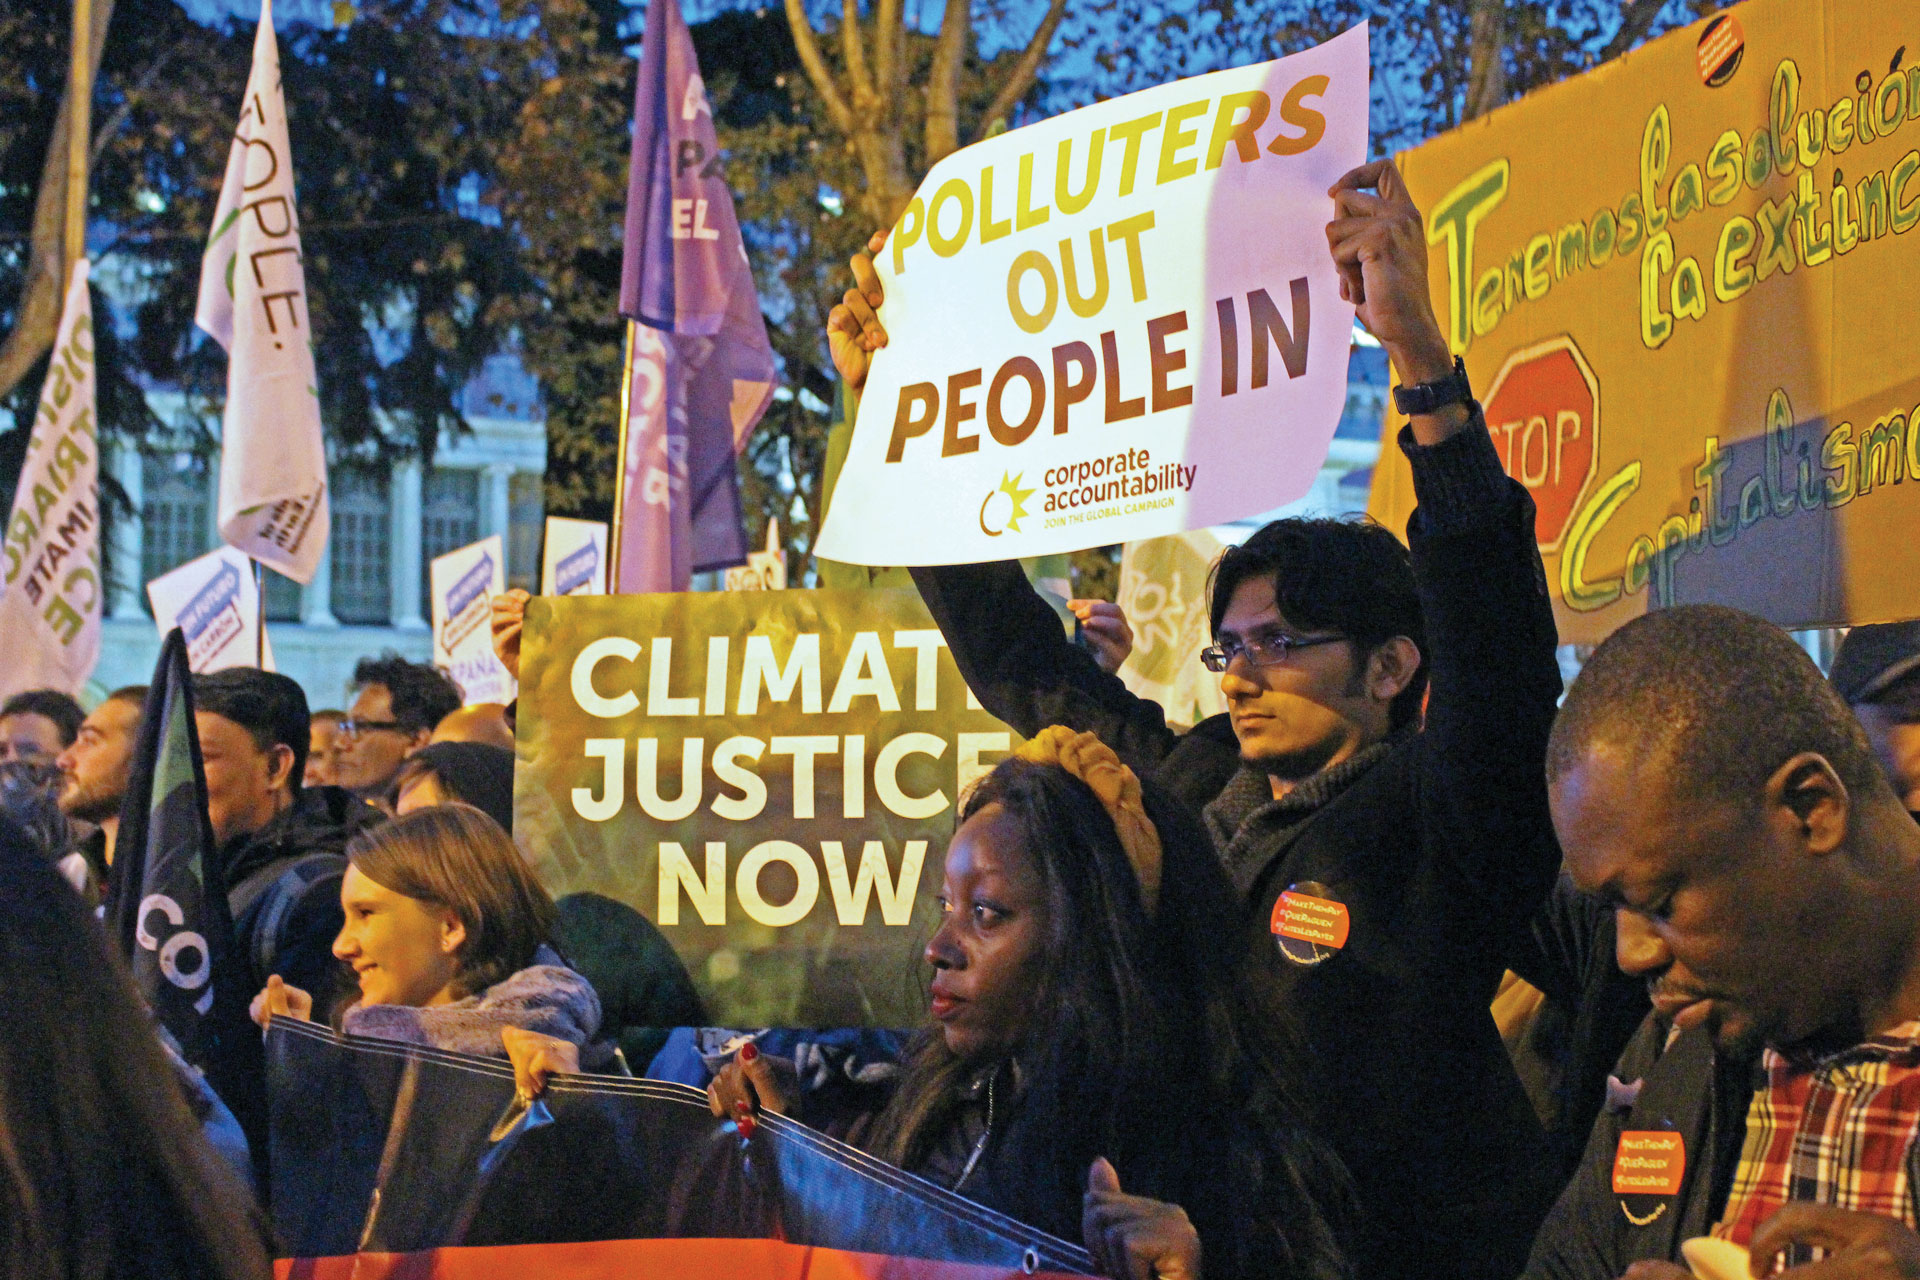 Protestors holding signs that say Climate justice and Polluters Out People In